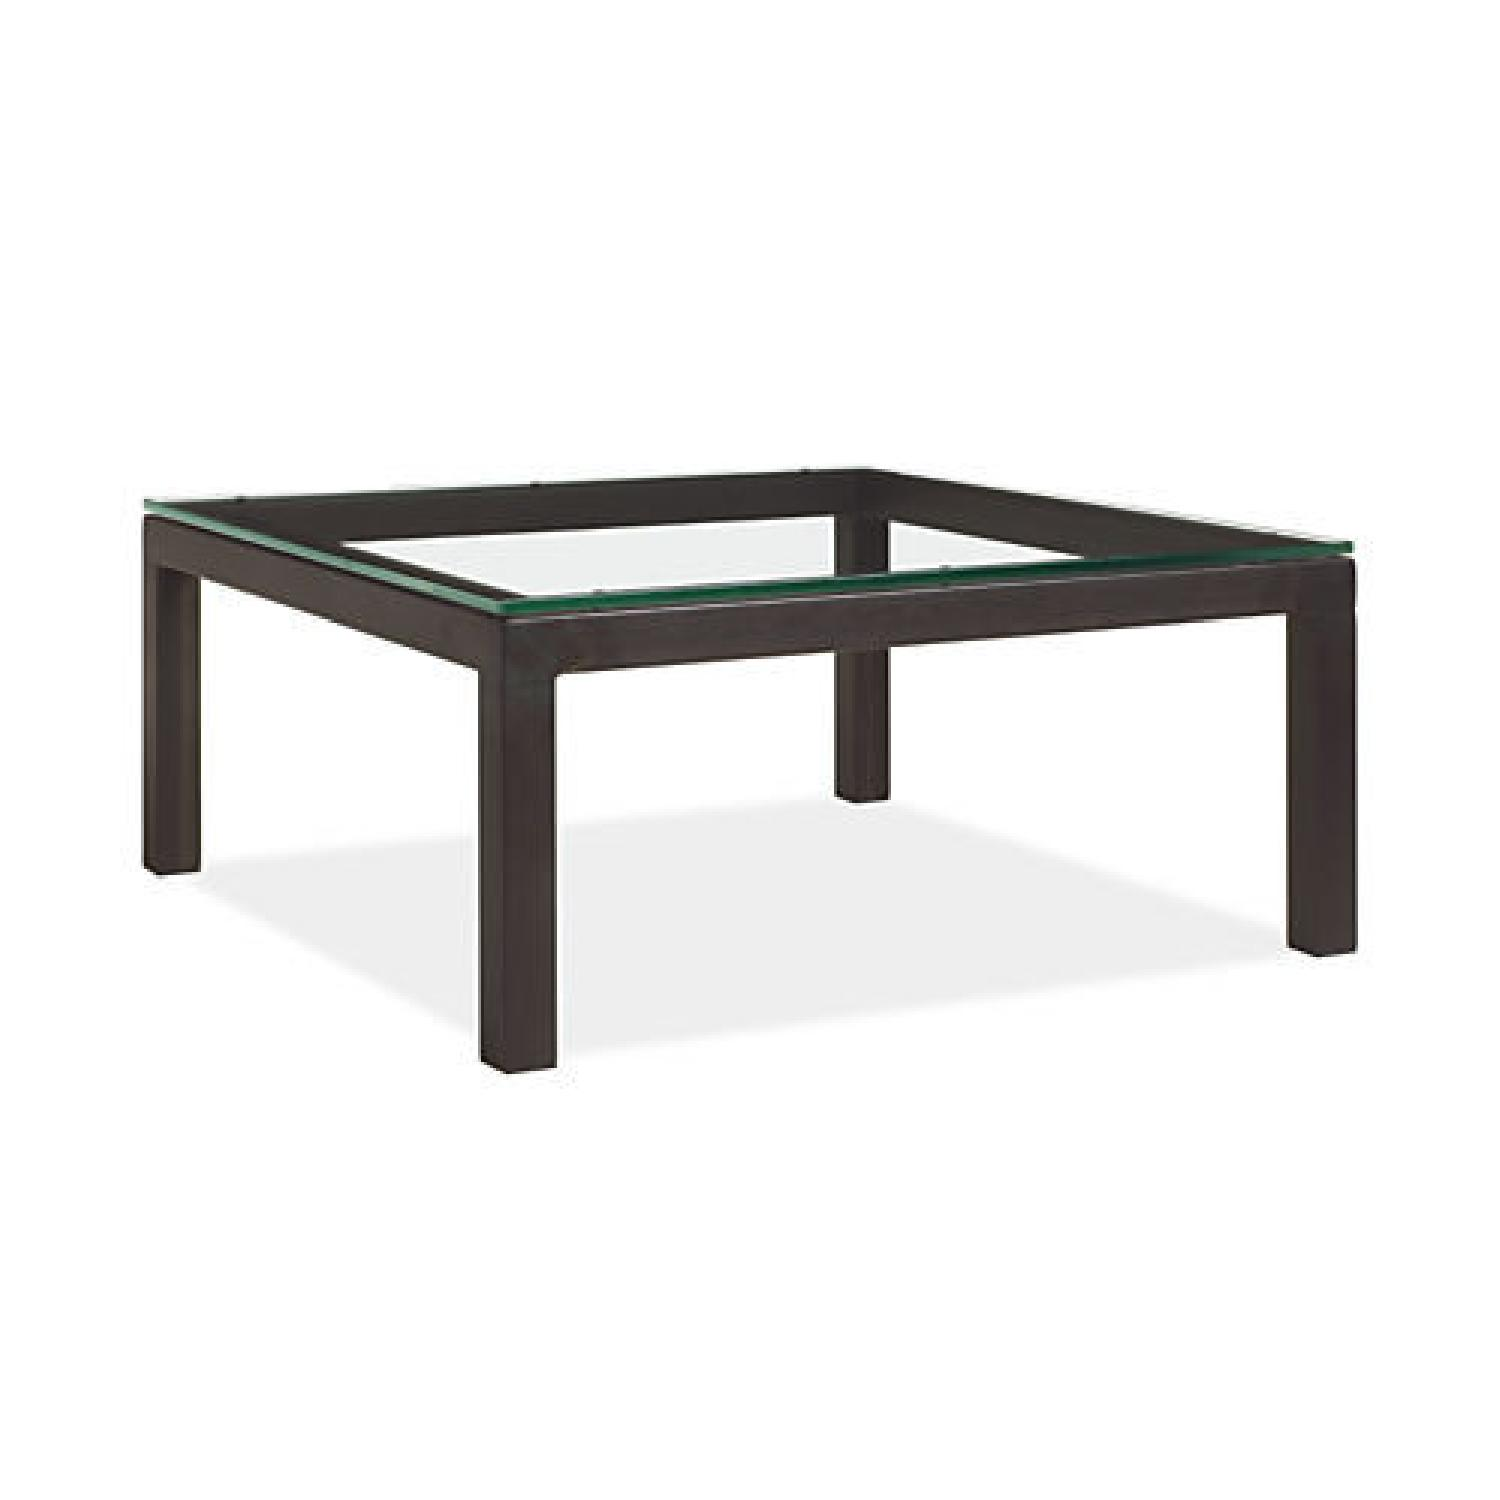 Room & Board Parsons Glass Coffee Table - image-0